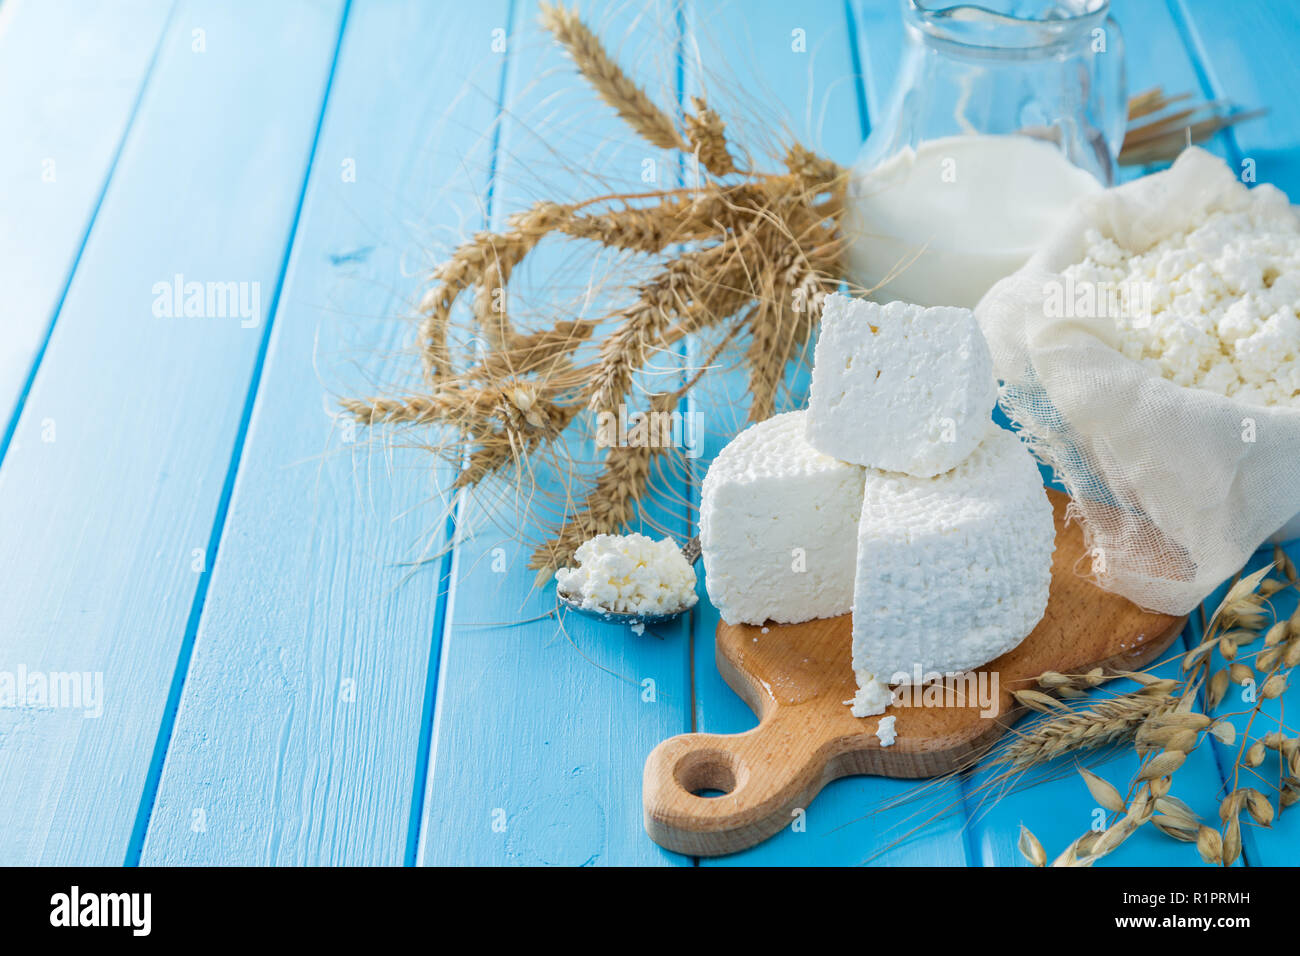 Selection of dairy products wood background, copy space - Stock Image